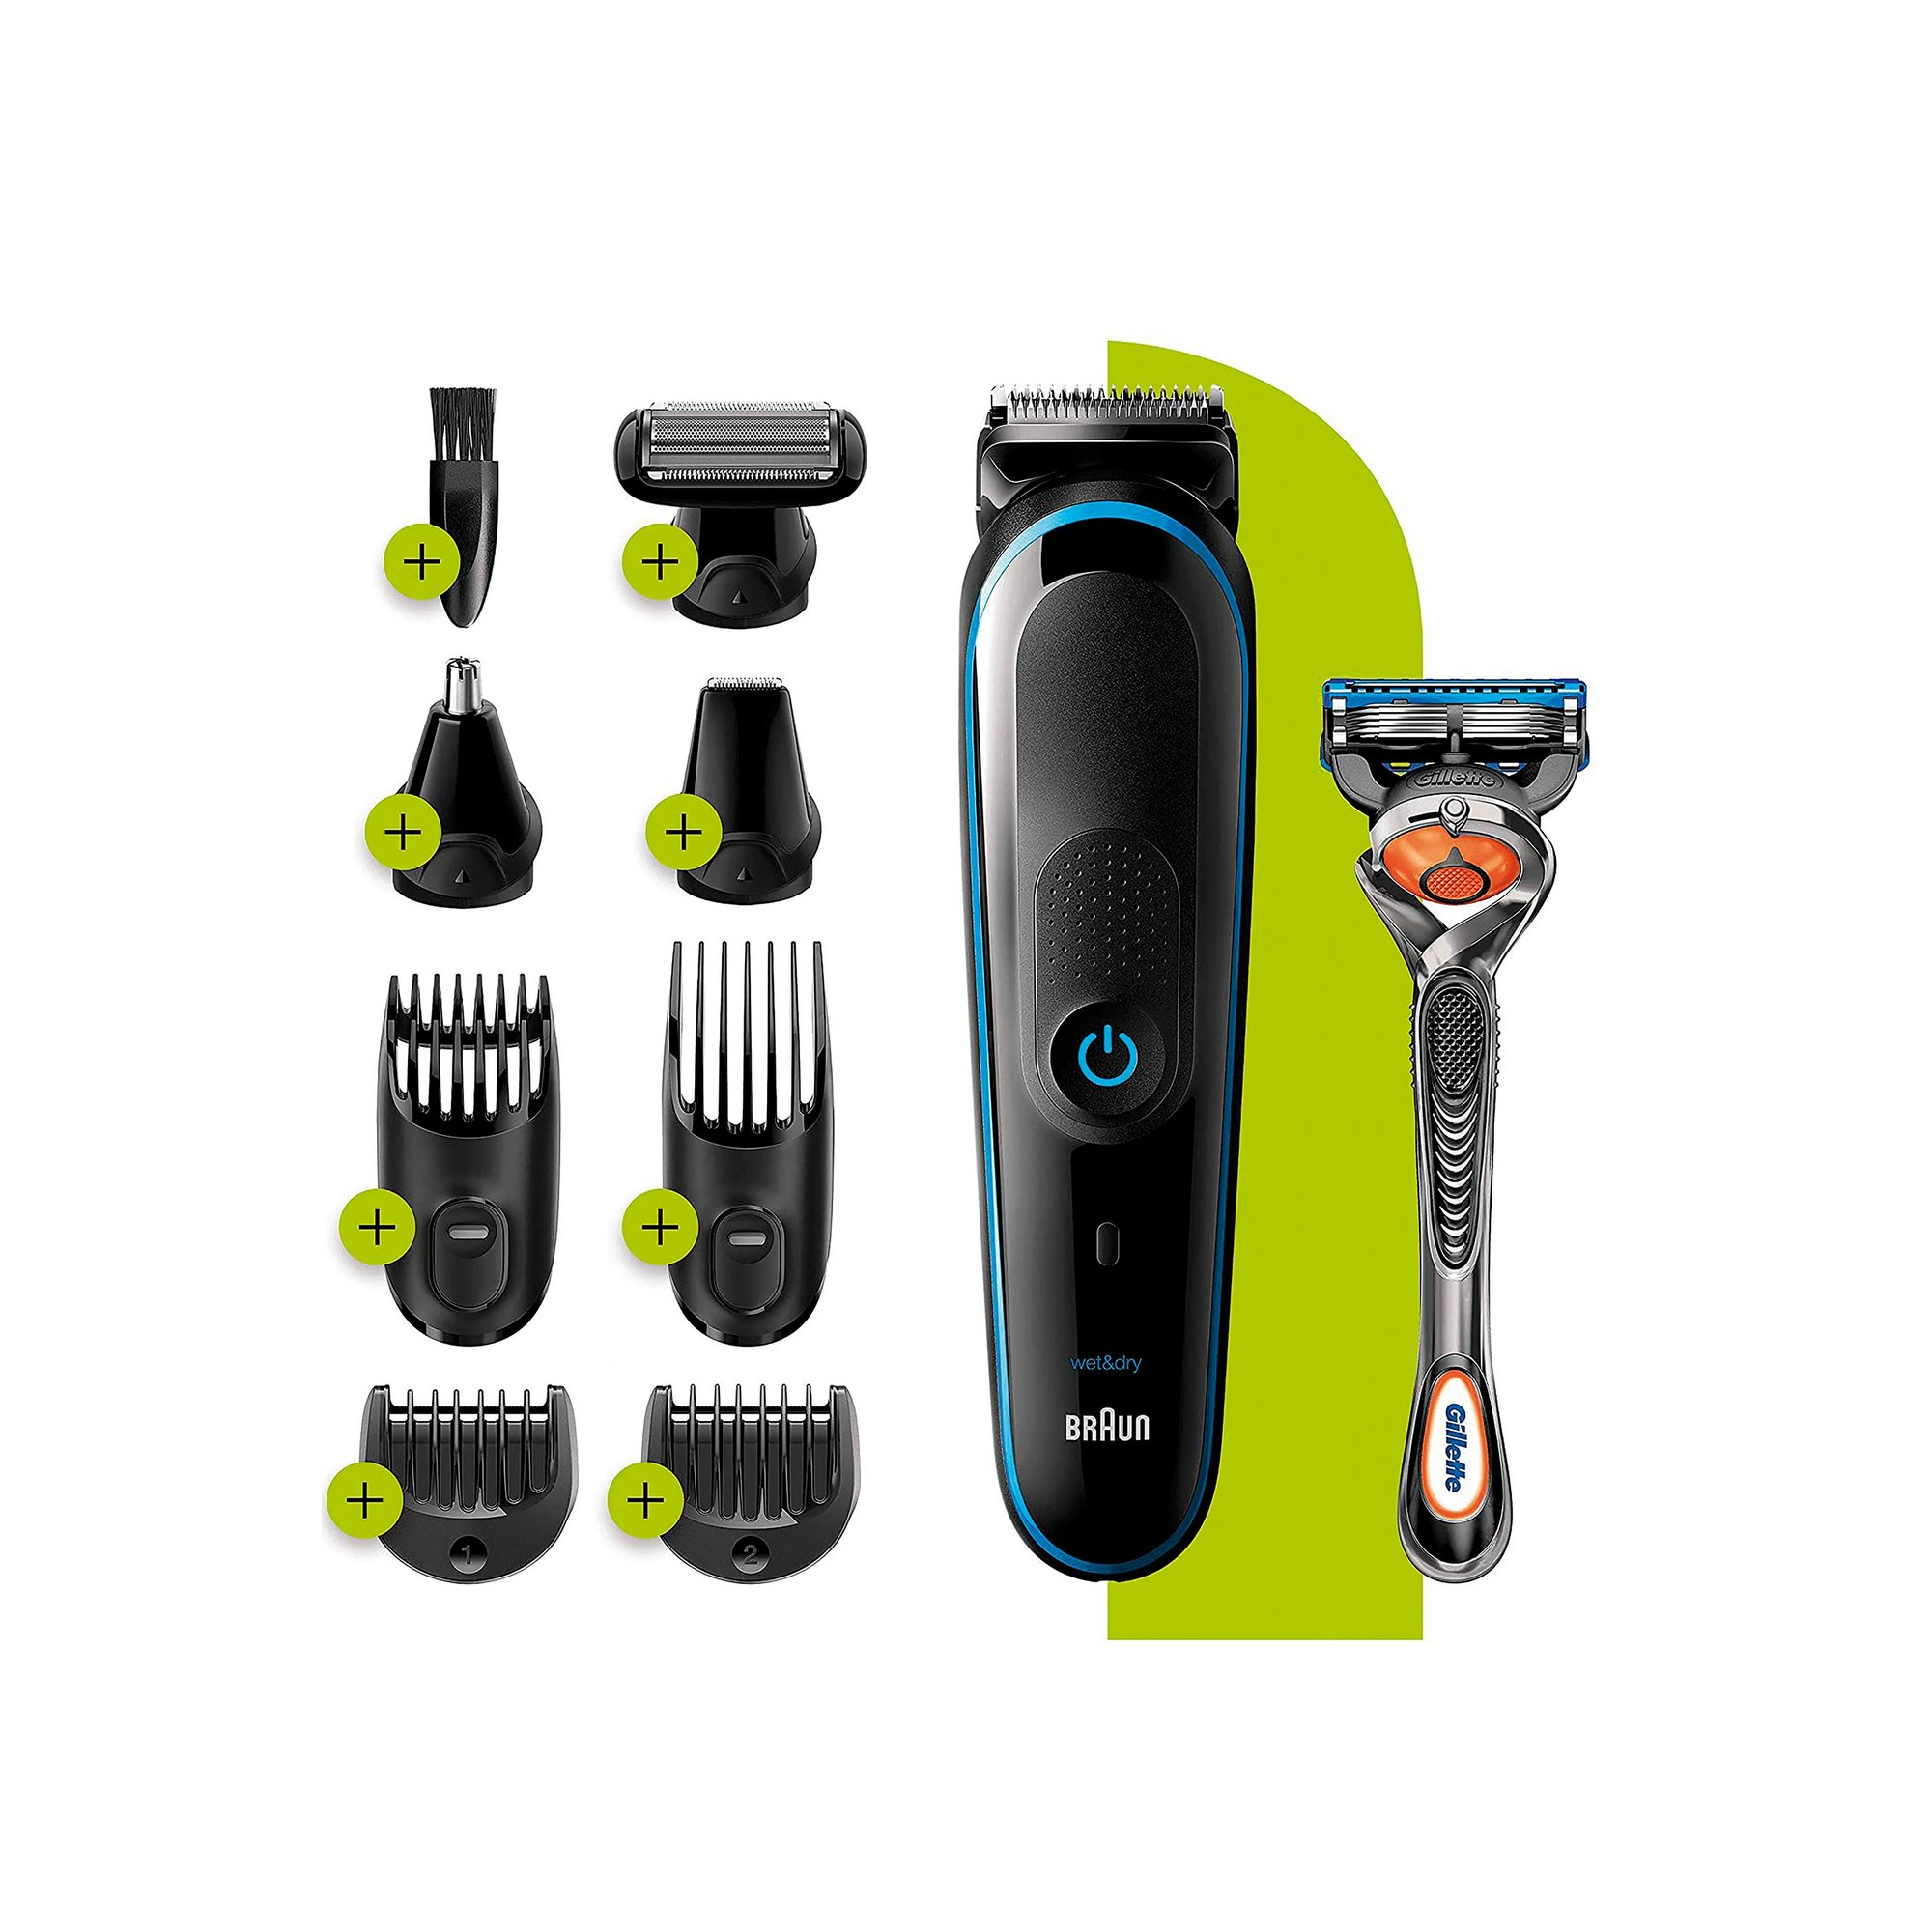 Image of Braun 9-in-1 Beard and Hair Trimmer